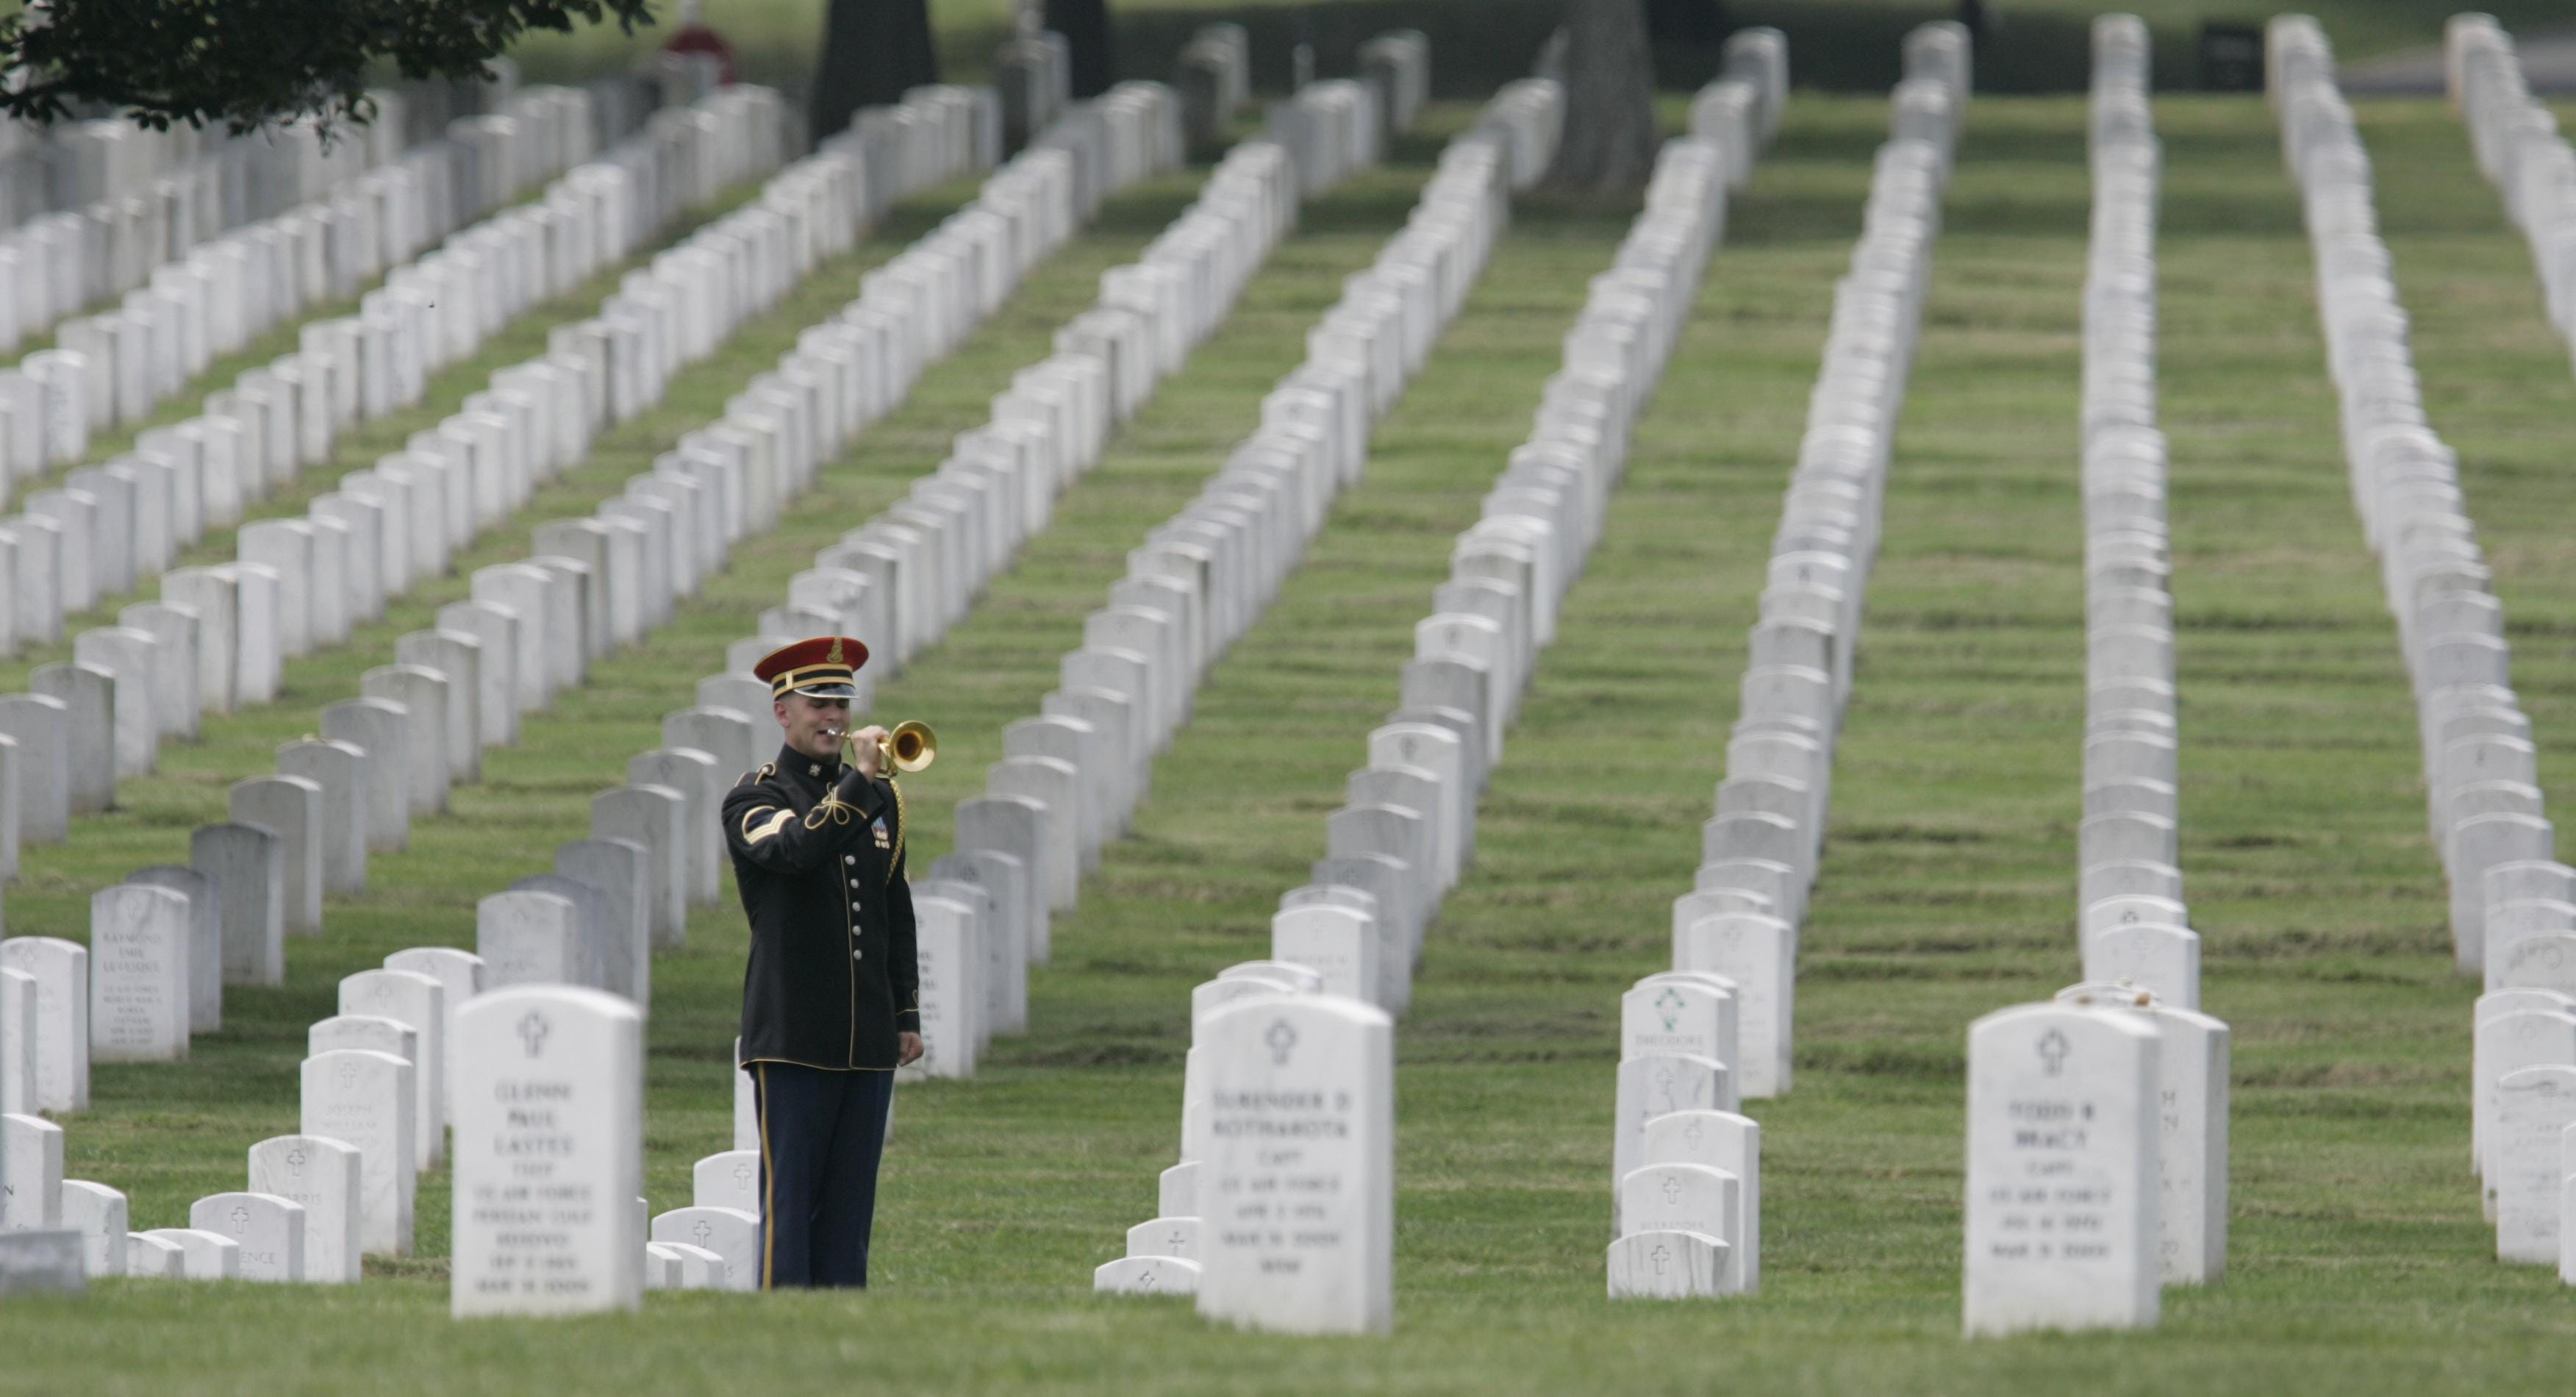 Column: Patriotism key to Memorial Day